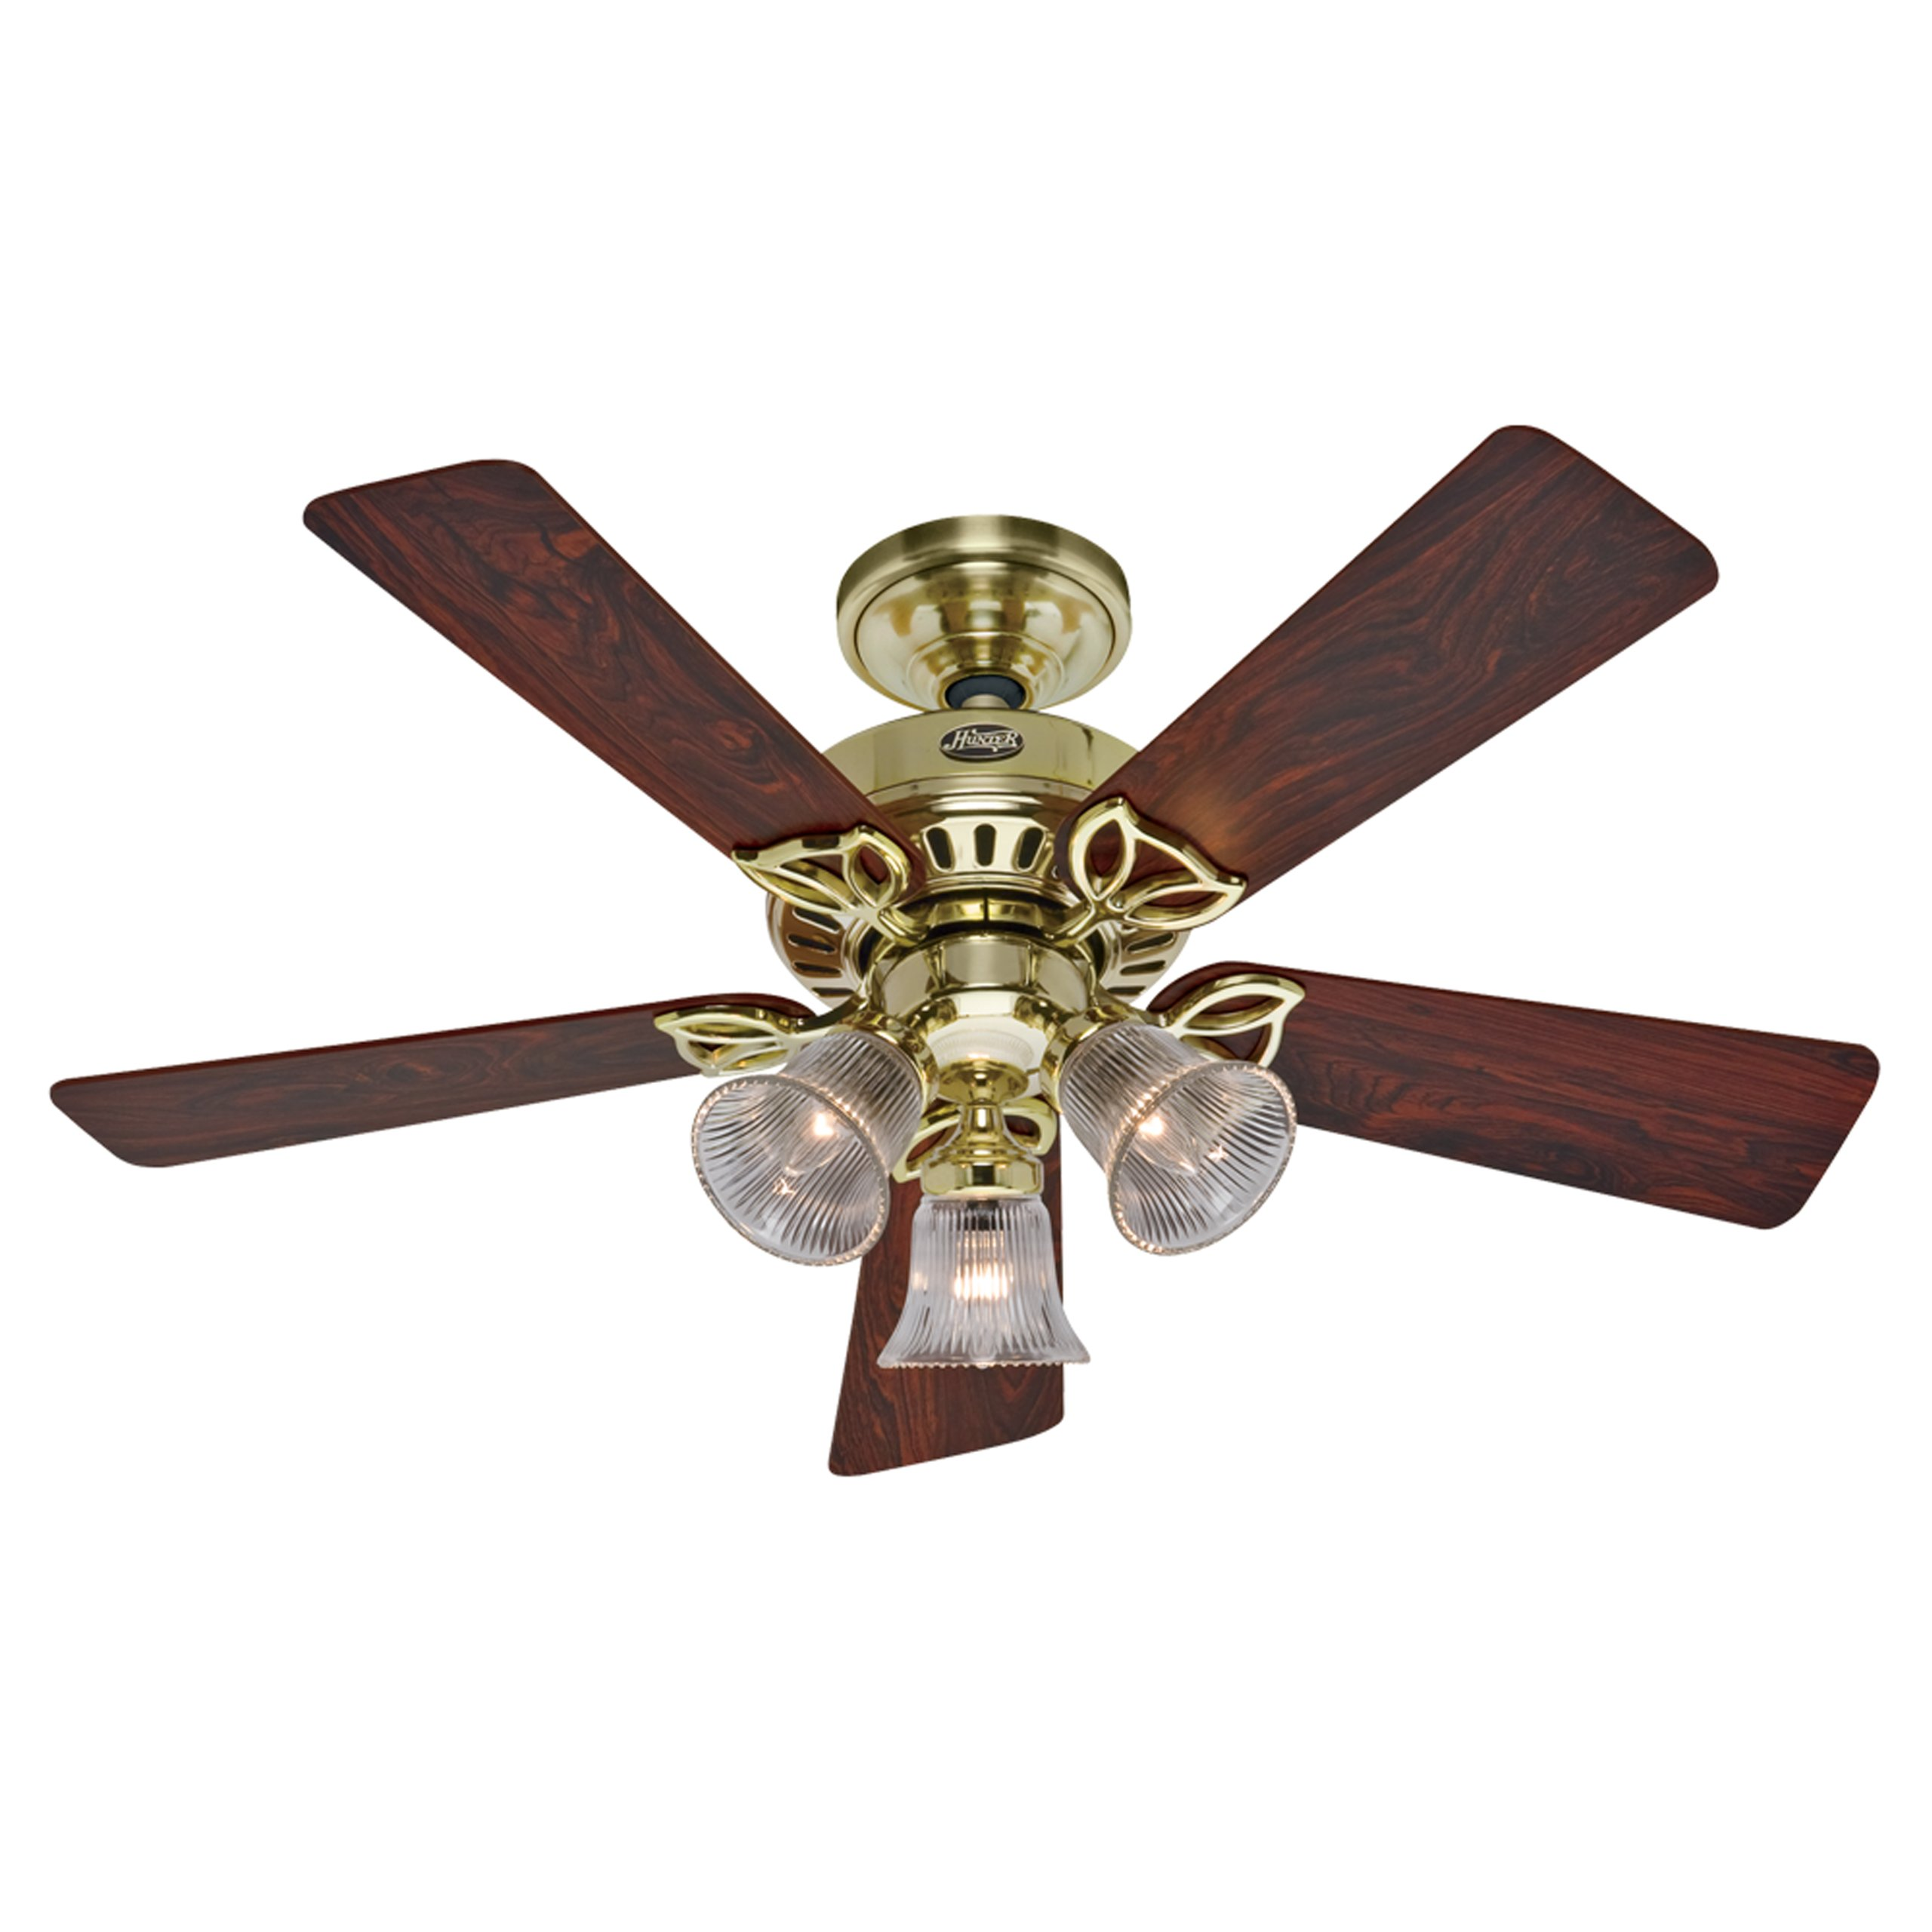 cfm master regular fanimation ceiling hayneedle with in bulbs light fans xeno fan product